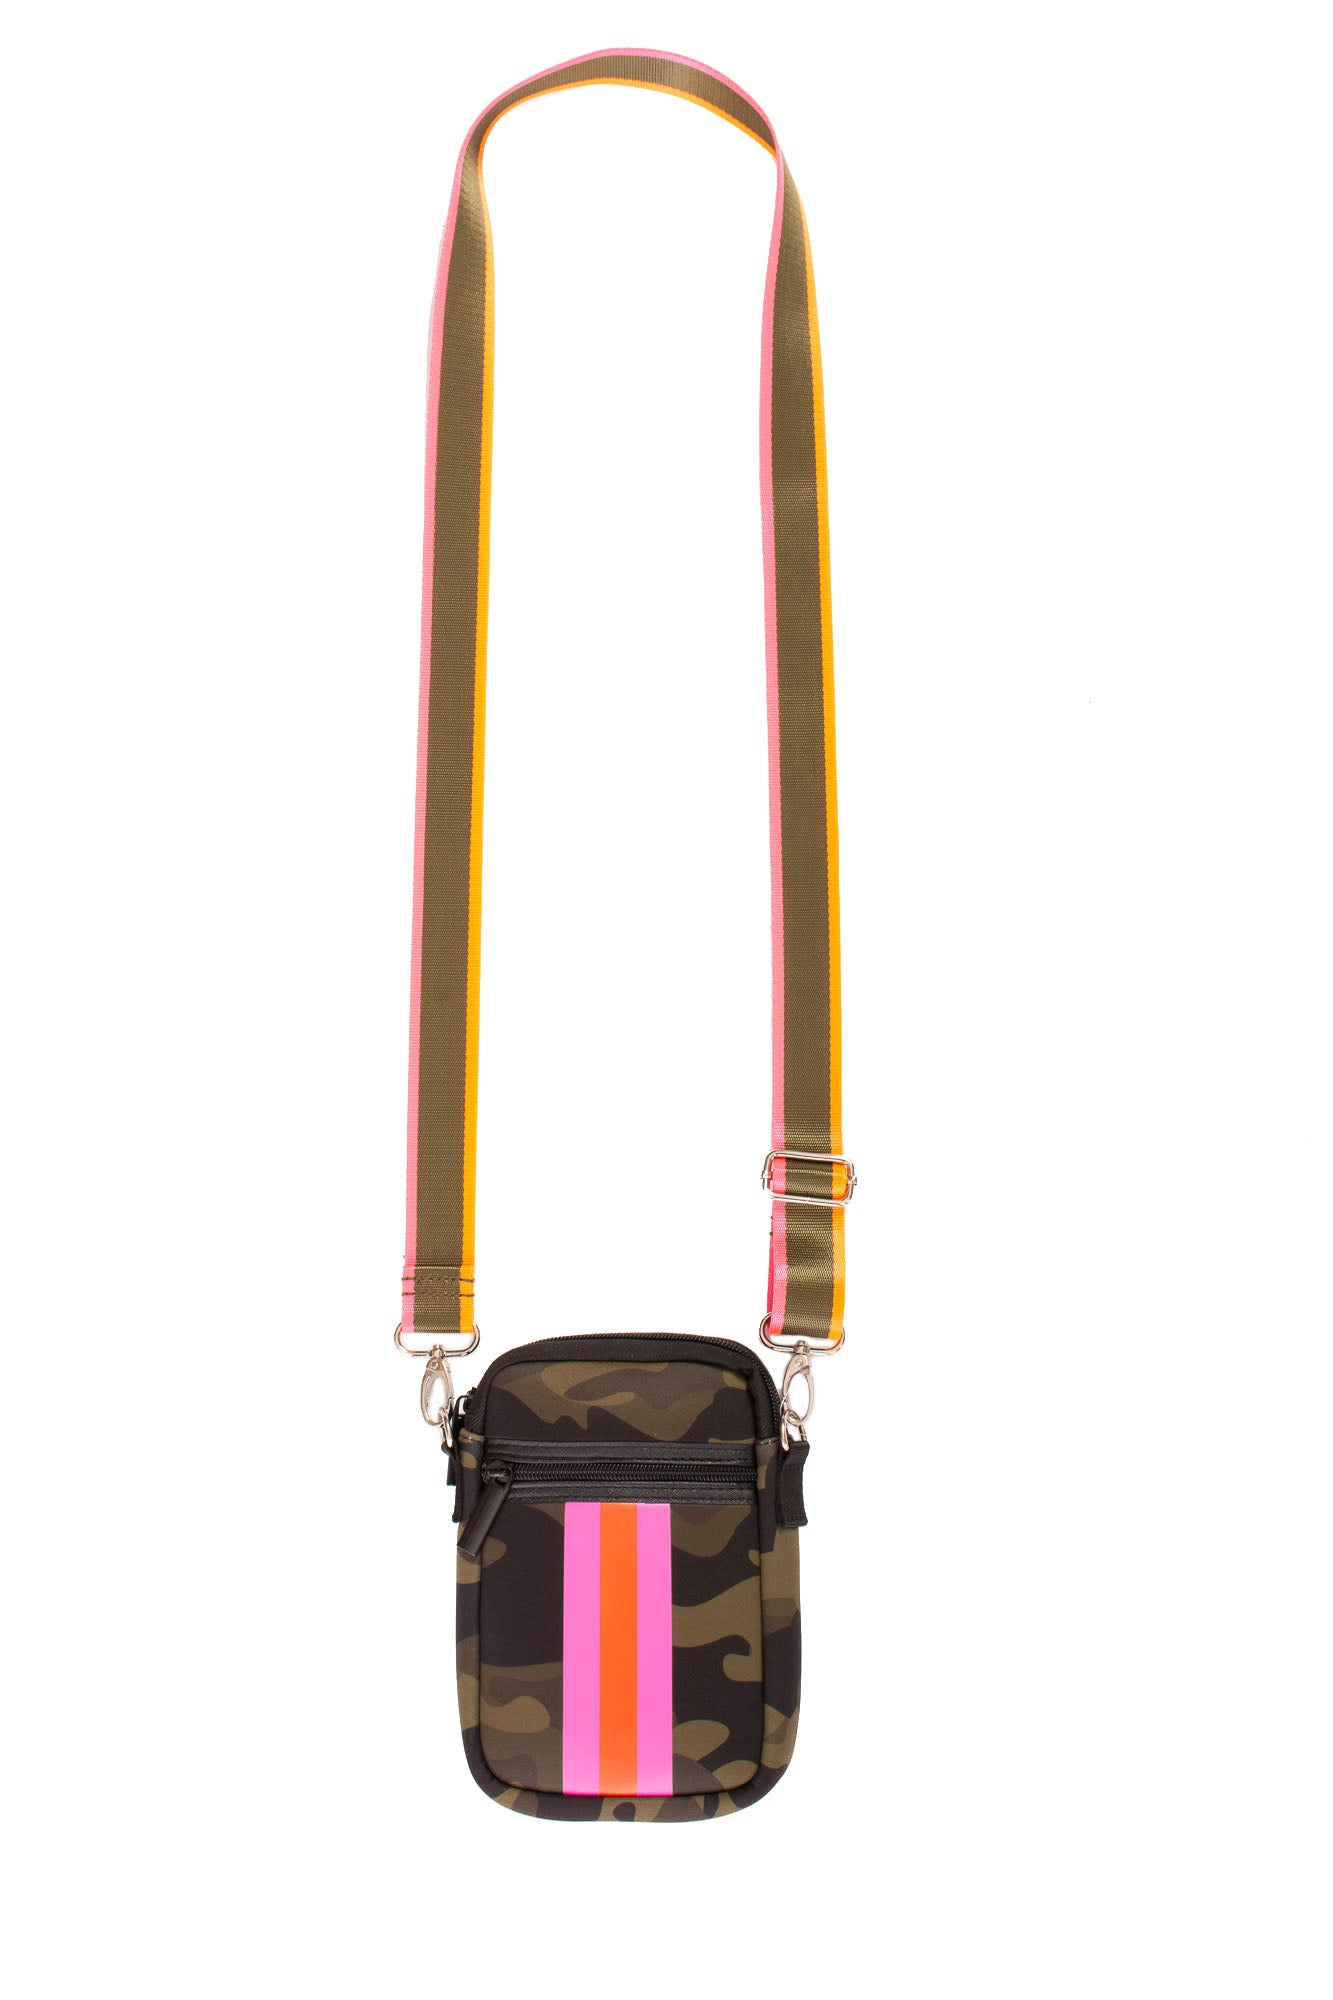 Haute Shore - Casey (CASEY, Green Camo w/Pink Orange Stripe)